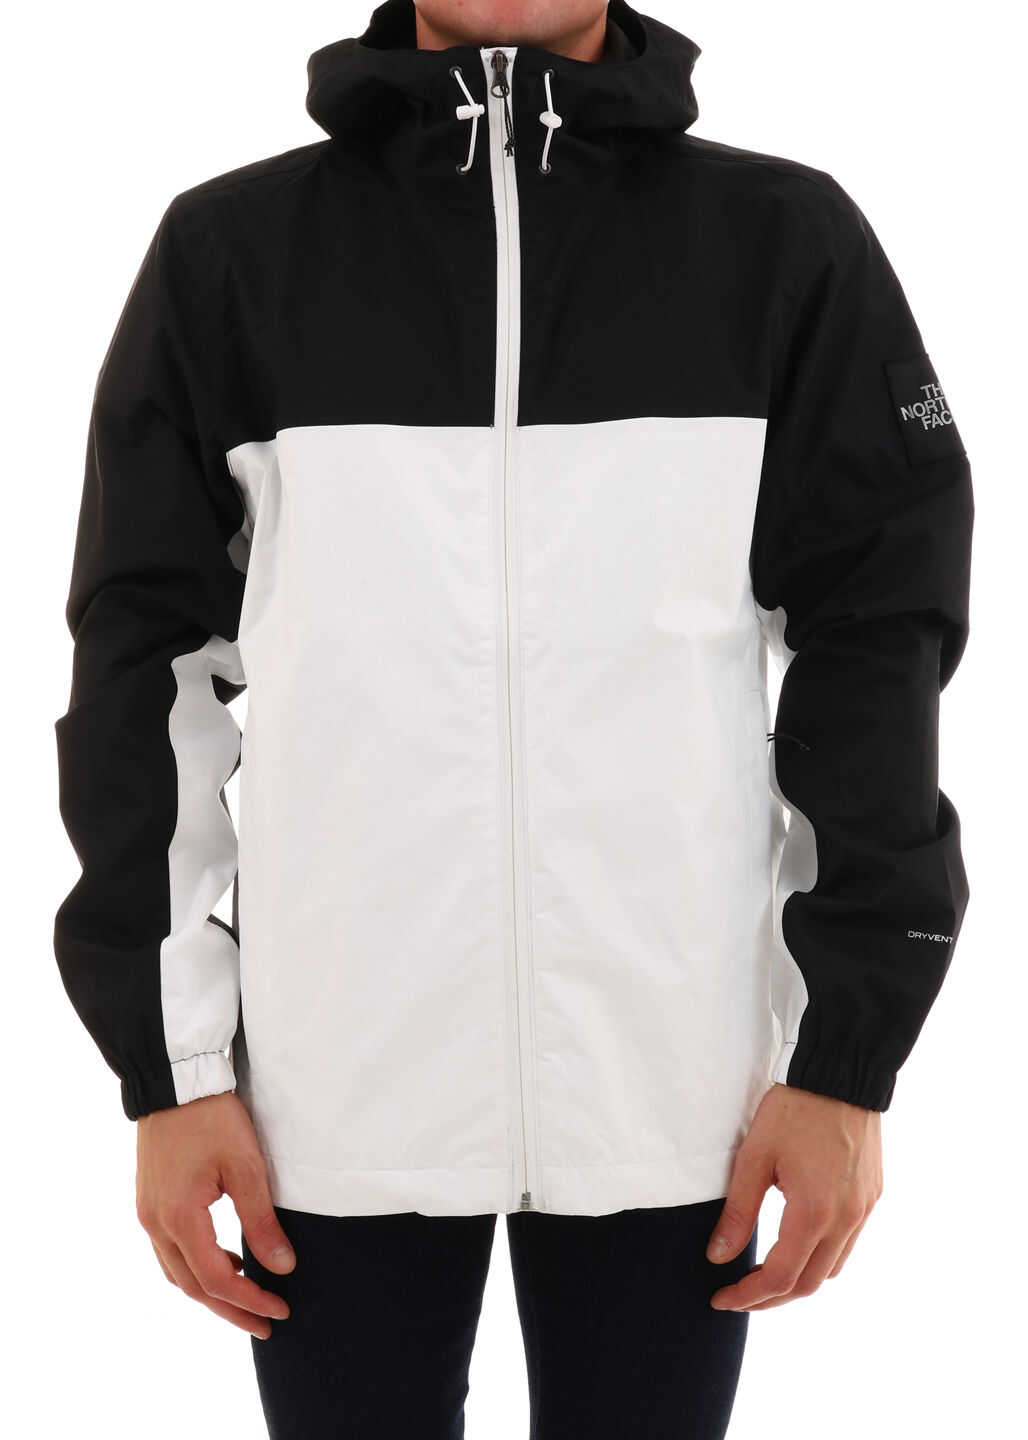 The North Face Technical Fabric Jacket Black